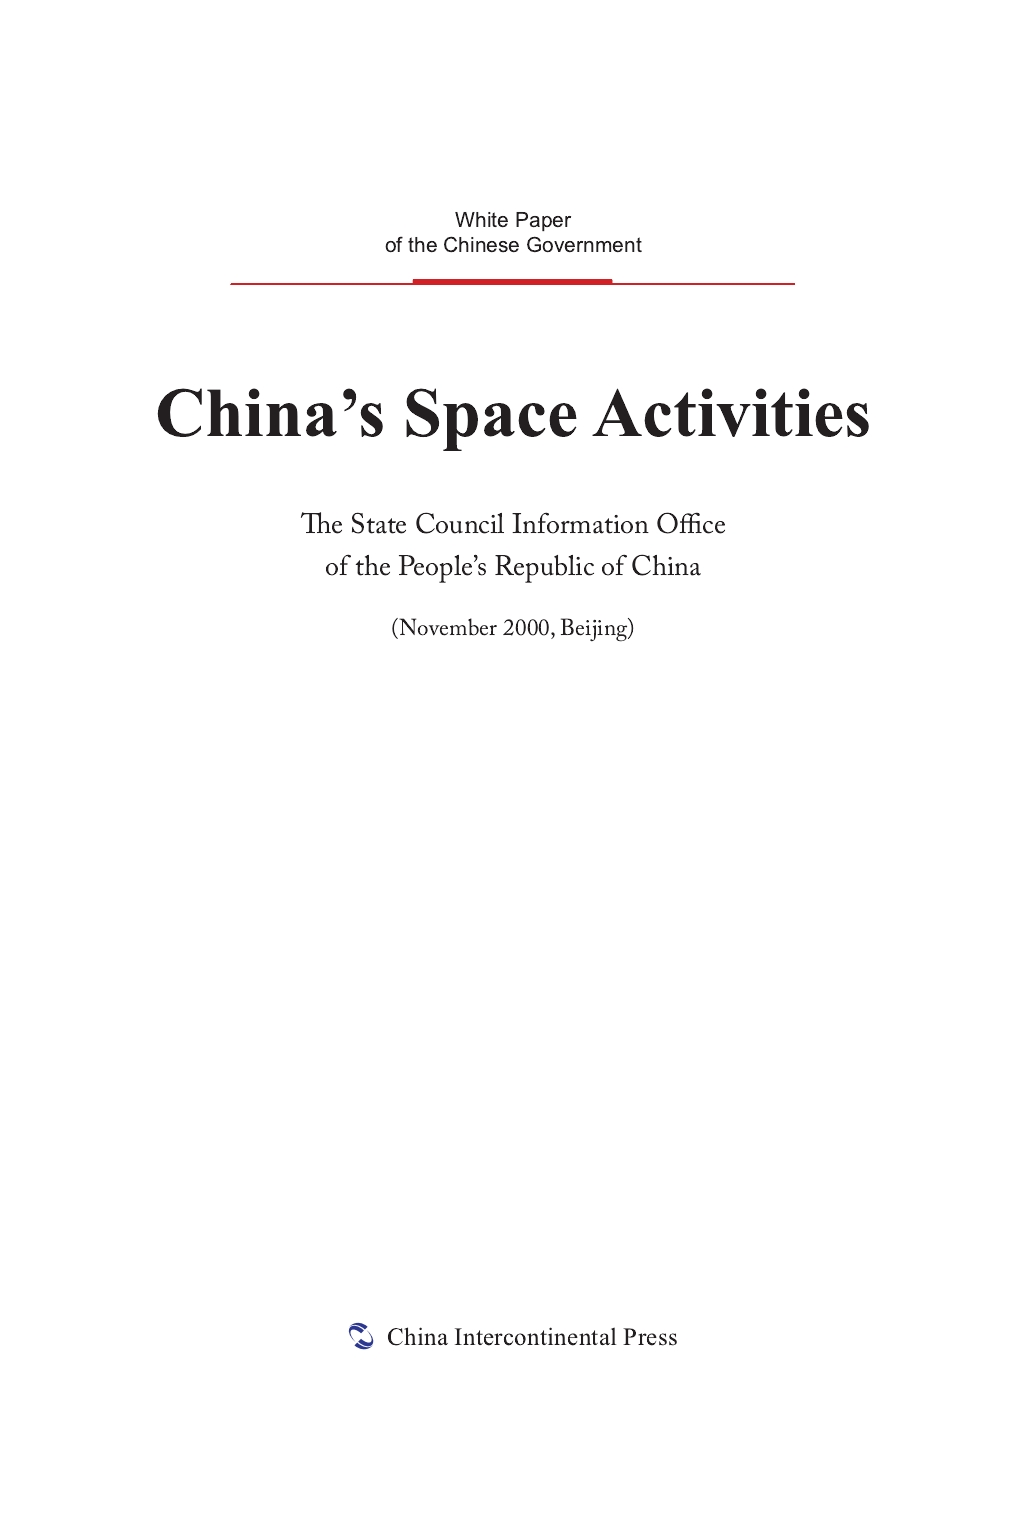 China's Space Activities